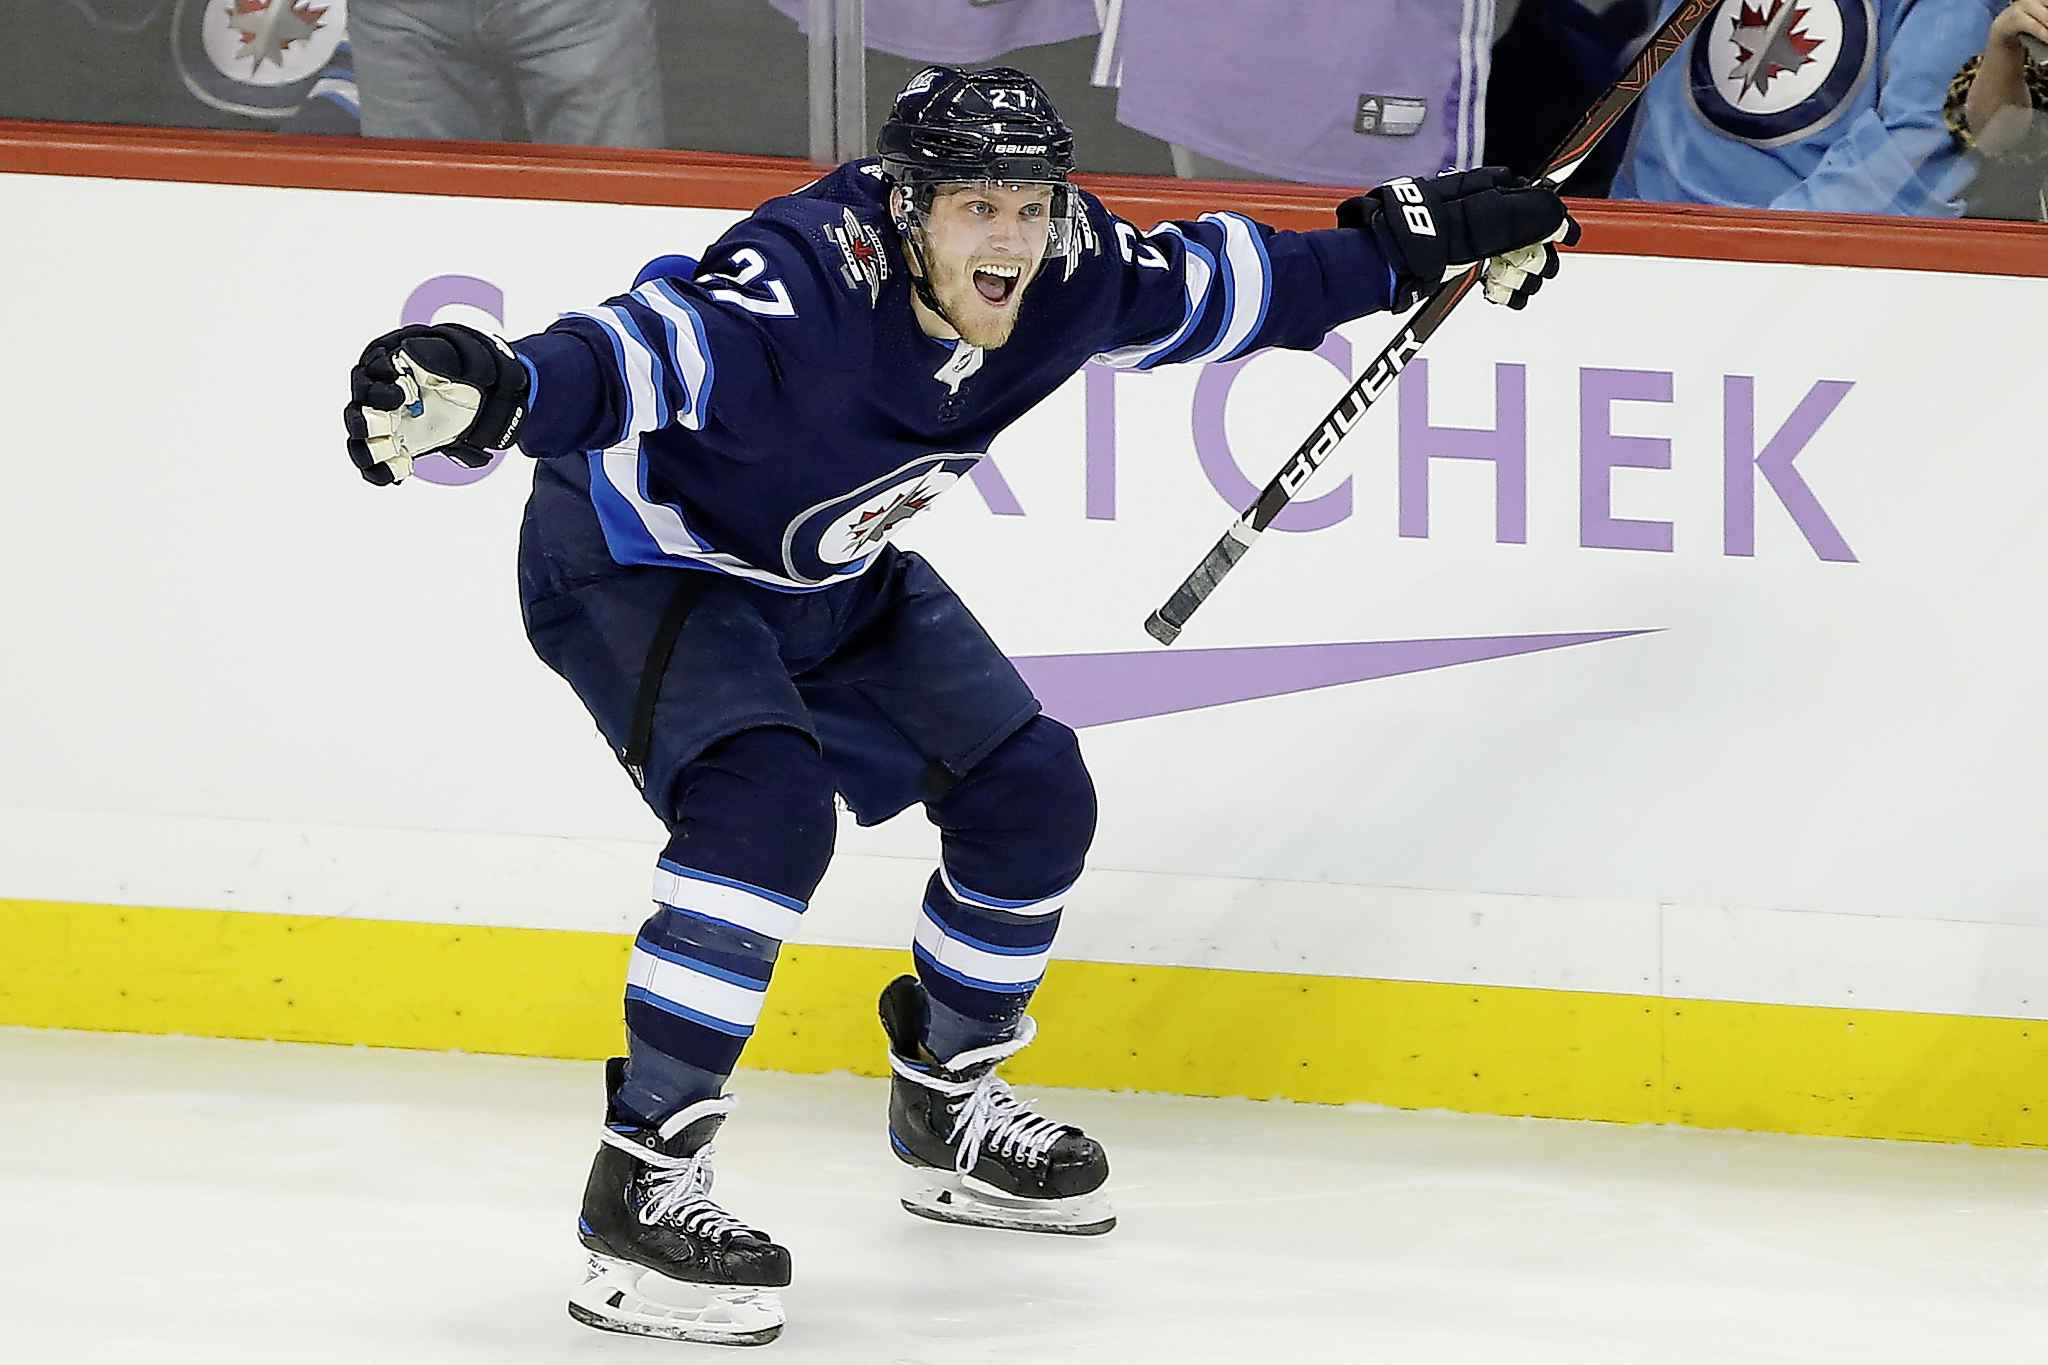 Laine Scores 100th Career Goal, Ehlers Nabs Hat Trick In Jets' 6-5 Win Over Blackhawks